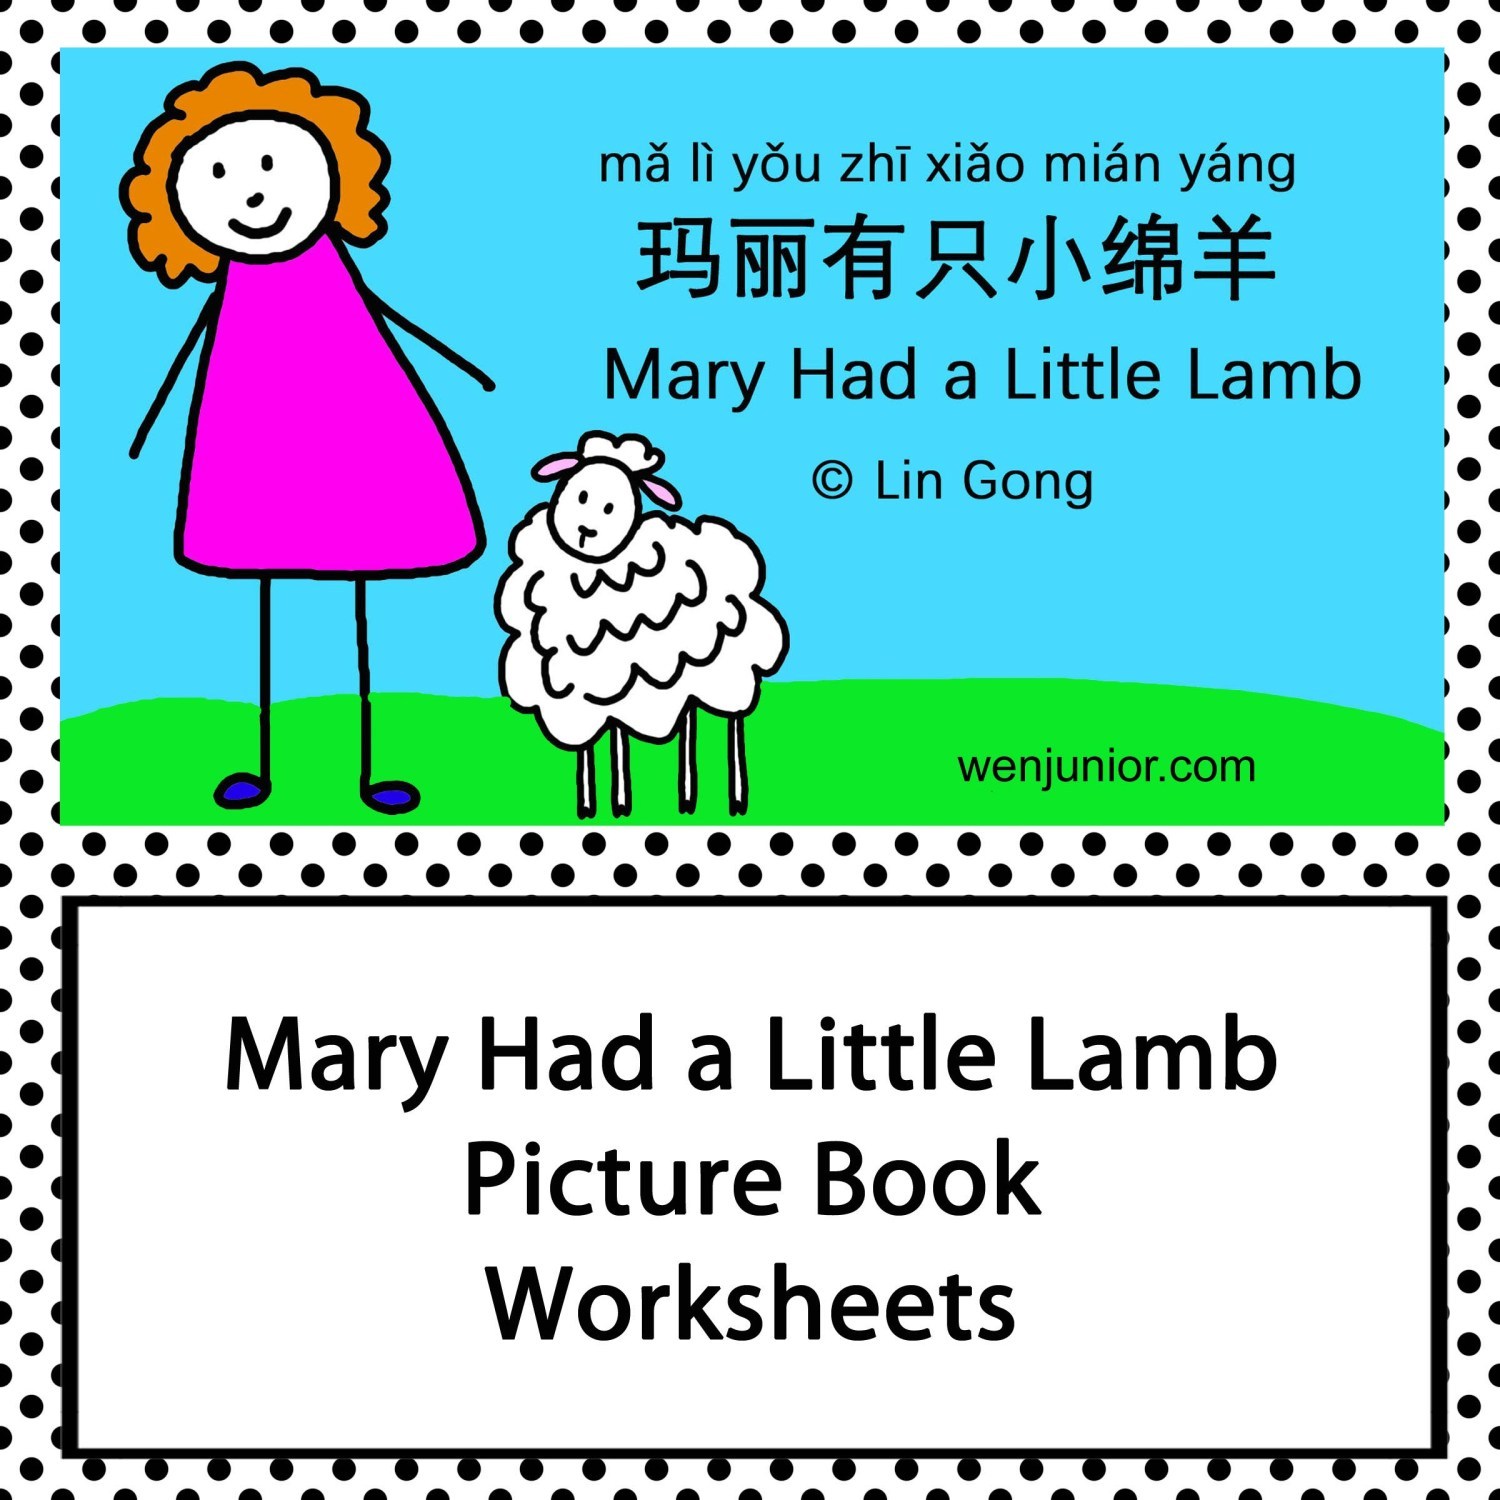 mary had a little lamb worksheet cover